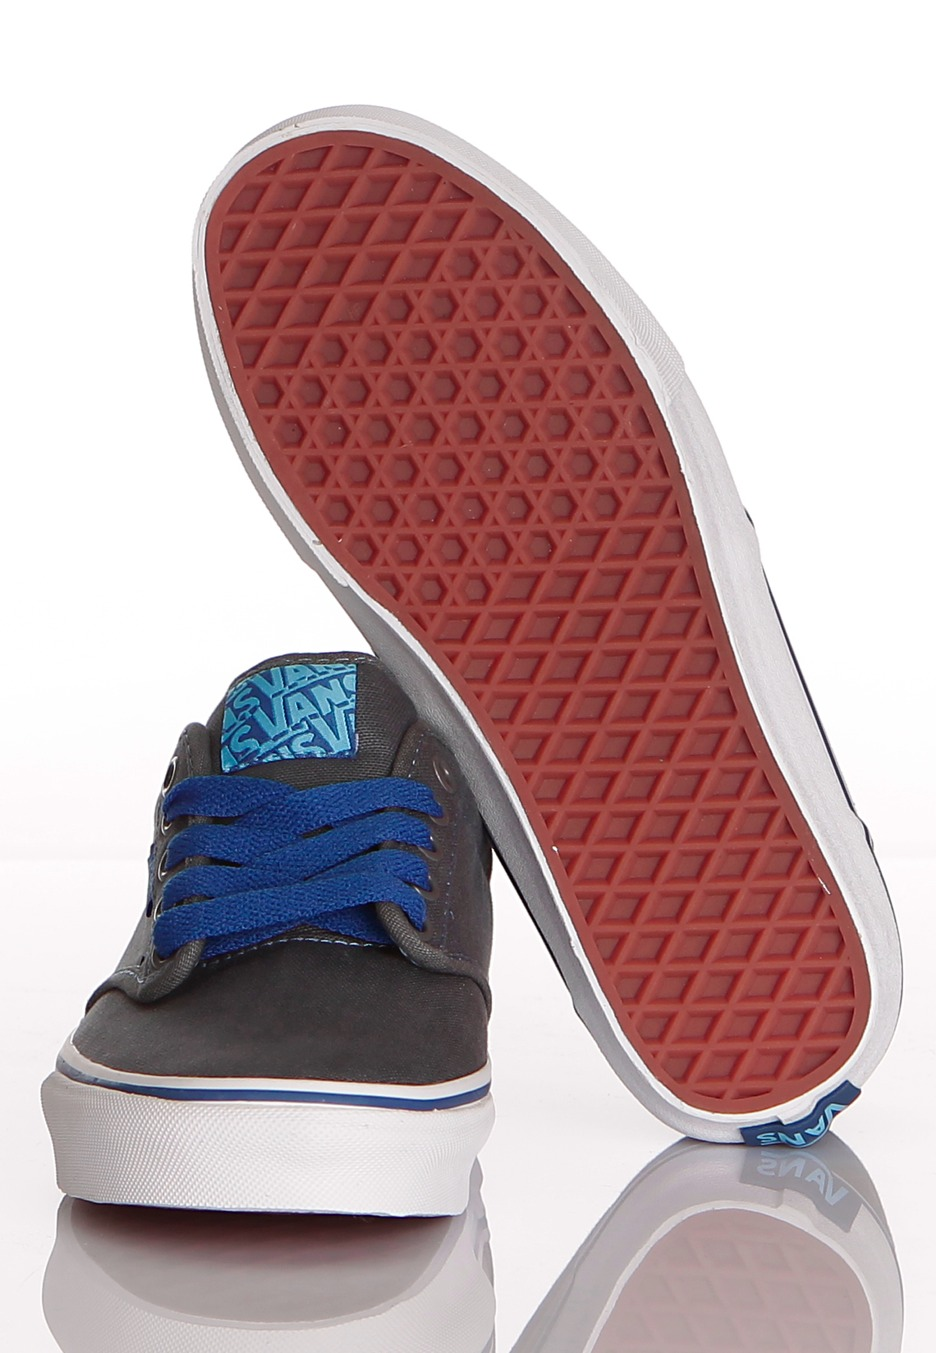 686d033e7dfe4e Vans - Atwood Grey Teal Blue - Girl Schuhe - Impericon.com AT